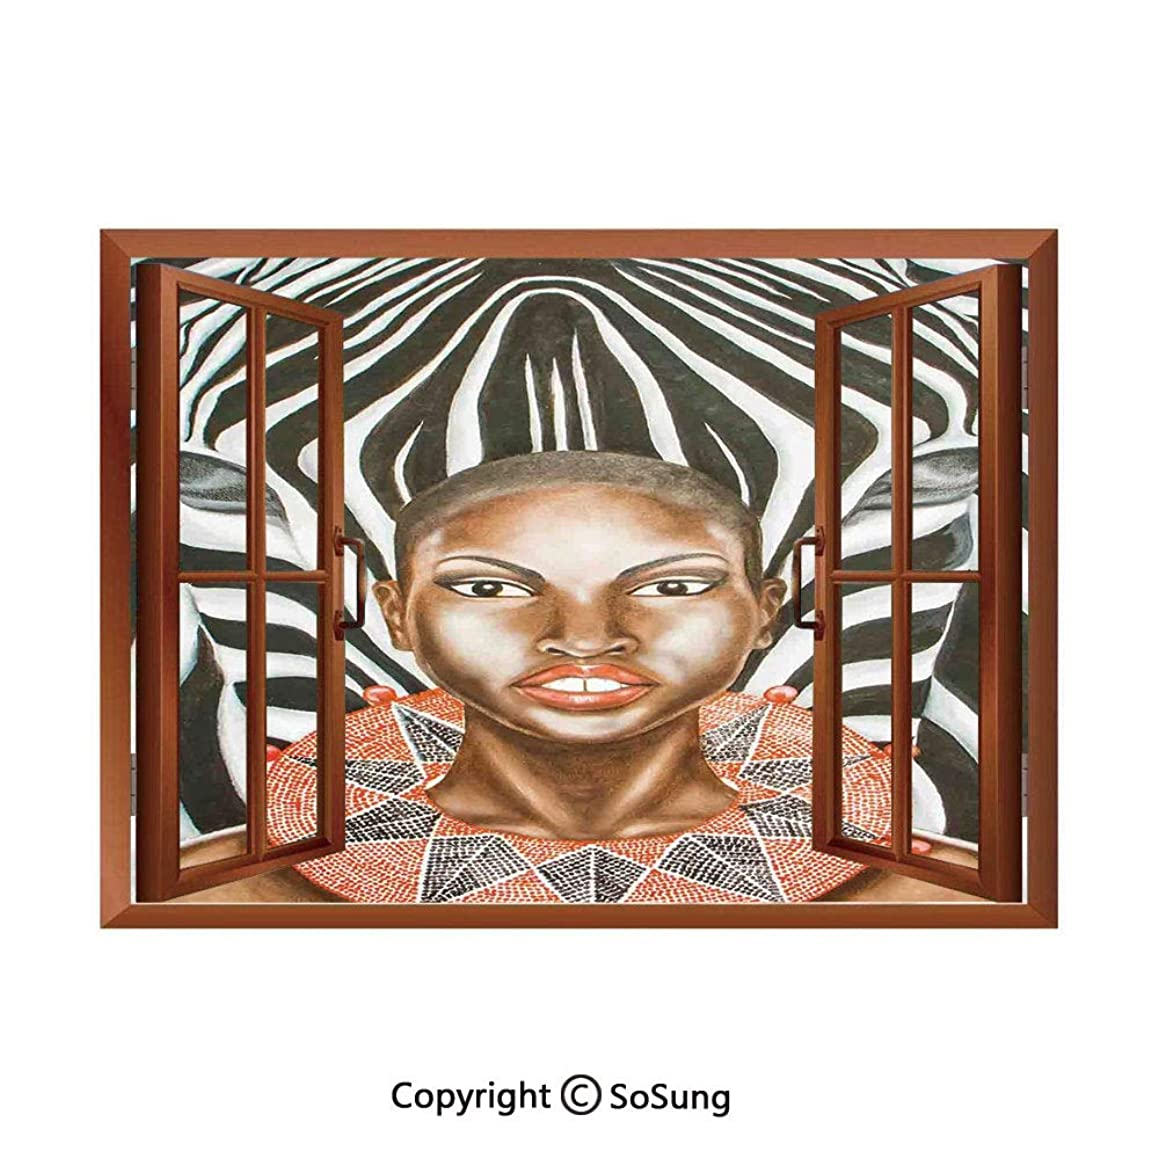 Country Decor Removable Wall Sticker/Wall Mural,African Woman with Zebra Spirit Animal Mother Nature Themed Artistic Image Creative Open Window Design Wall Decor,24